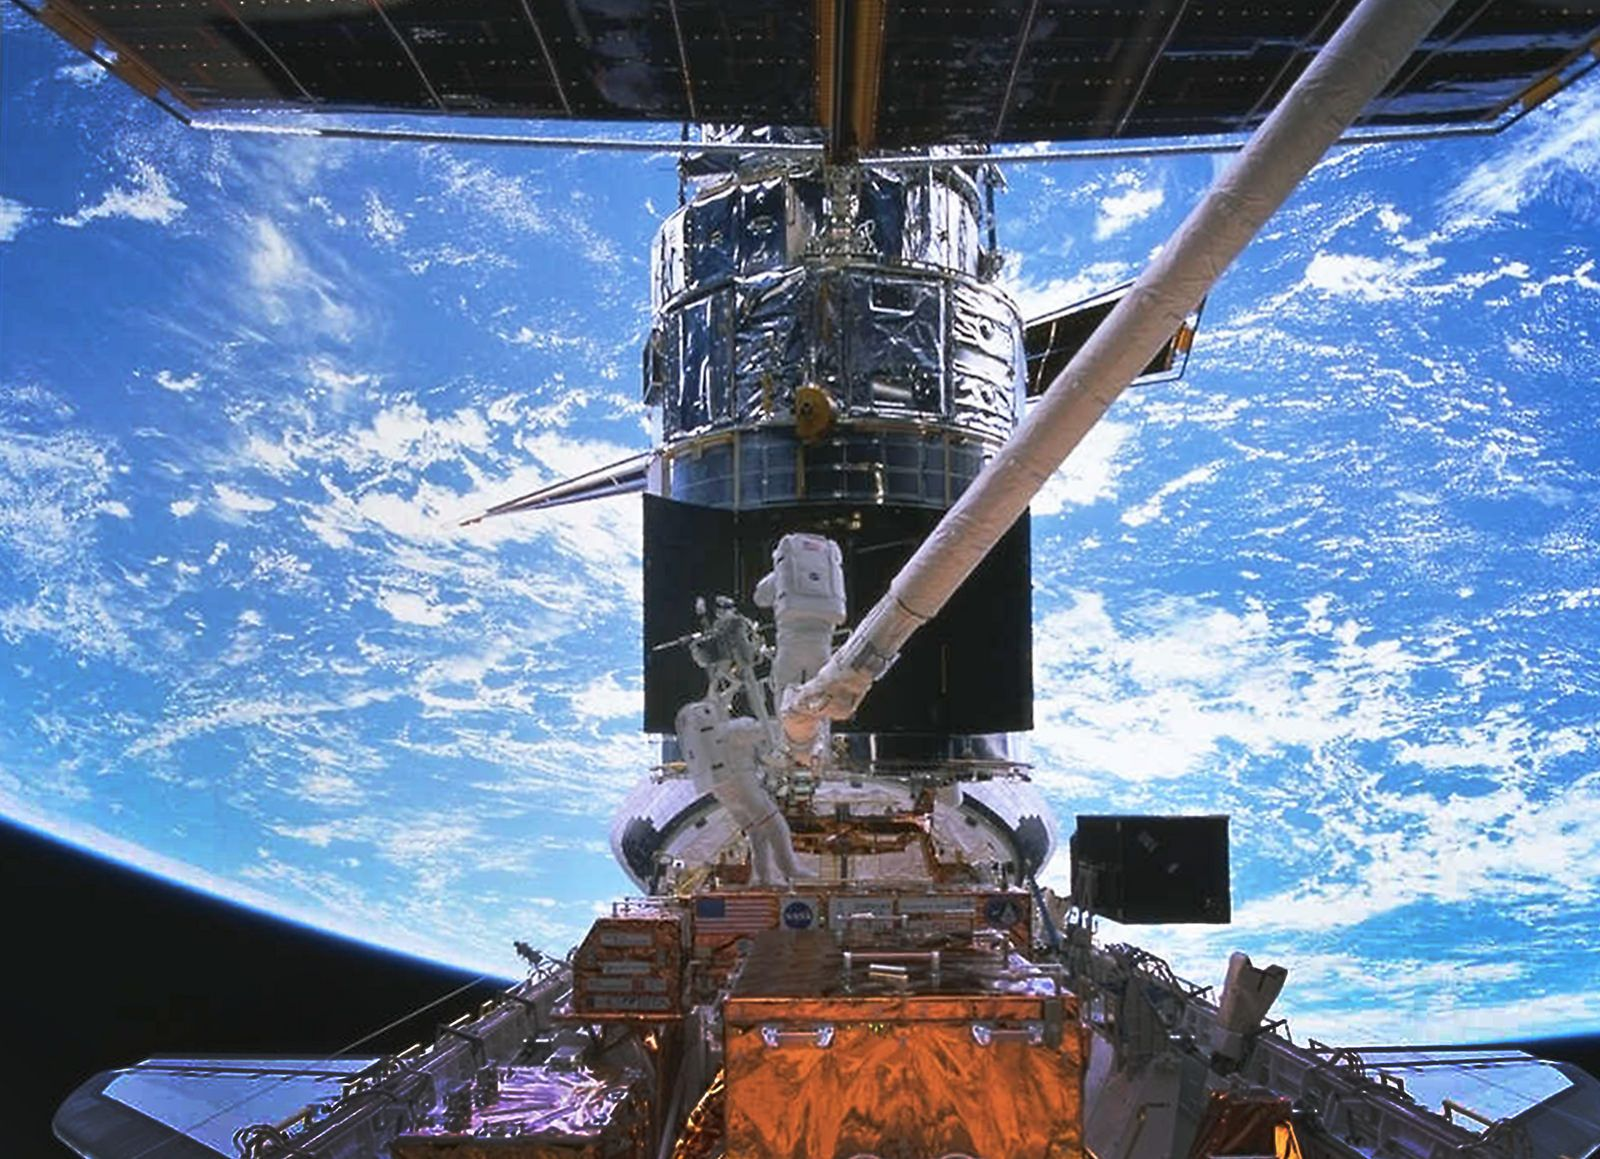 The 20th Anniversary of the Hubble Space Telescope's STIS